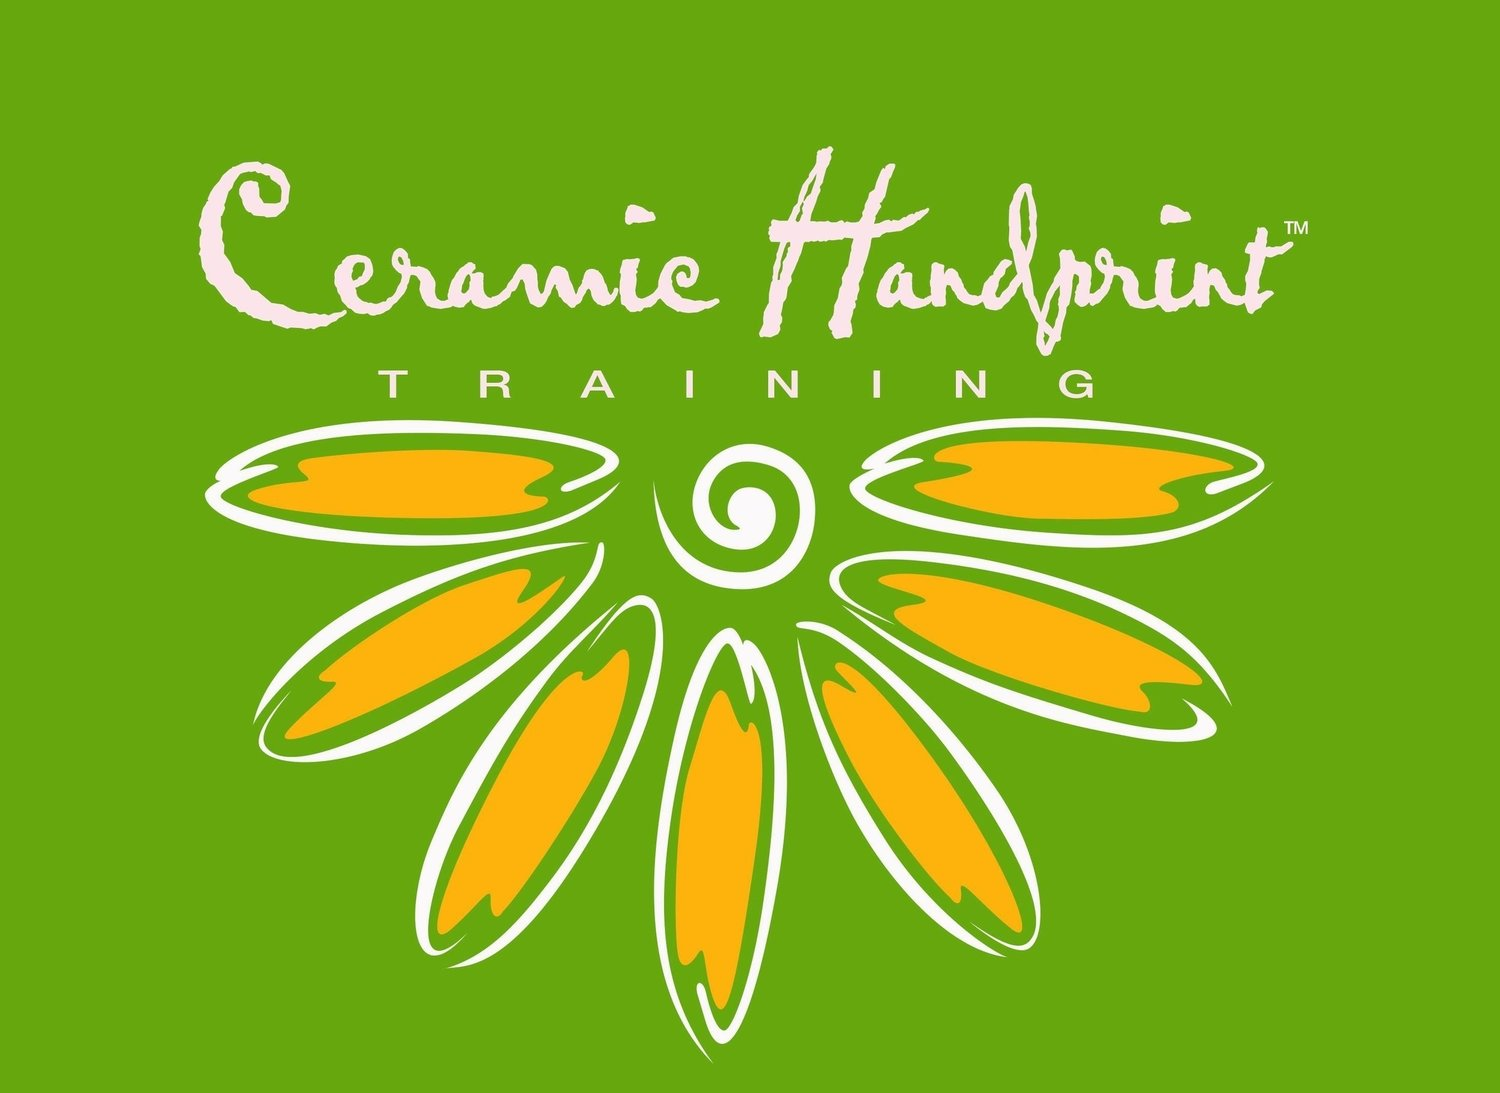 Ceramic Handprint Home Based Business